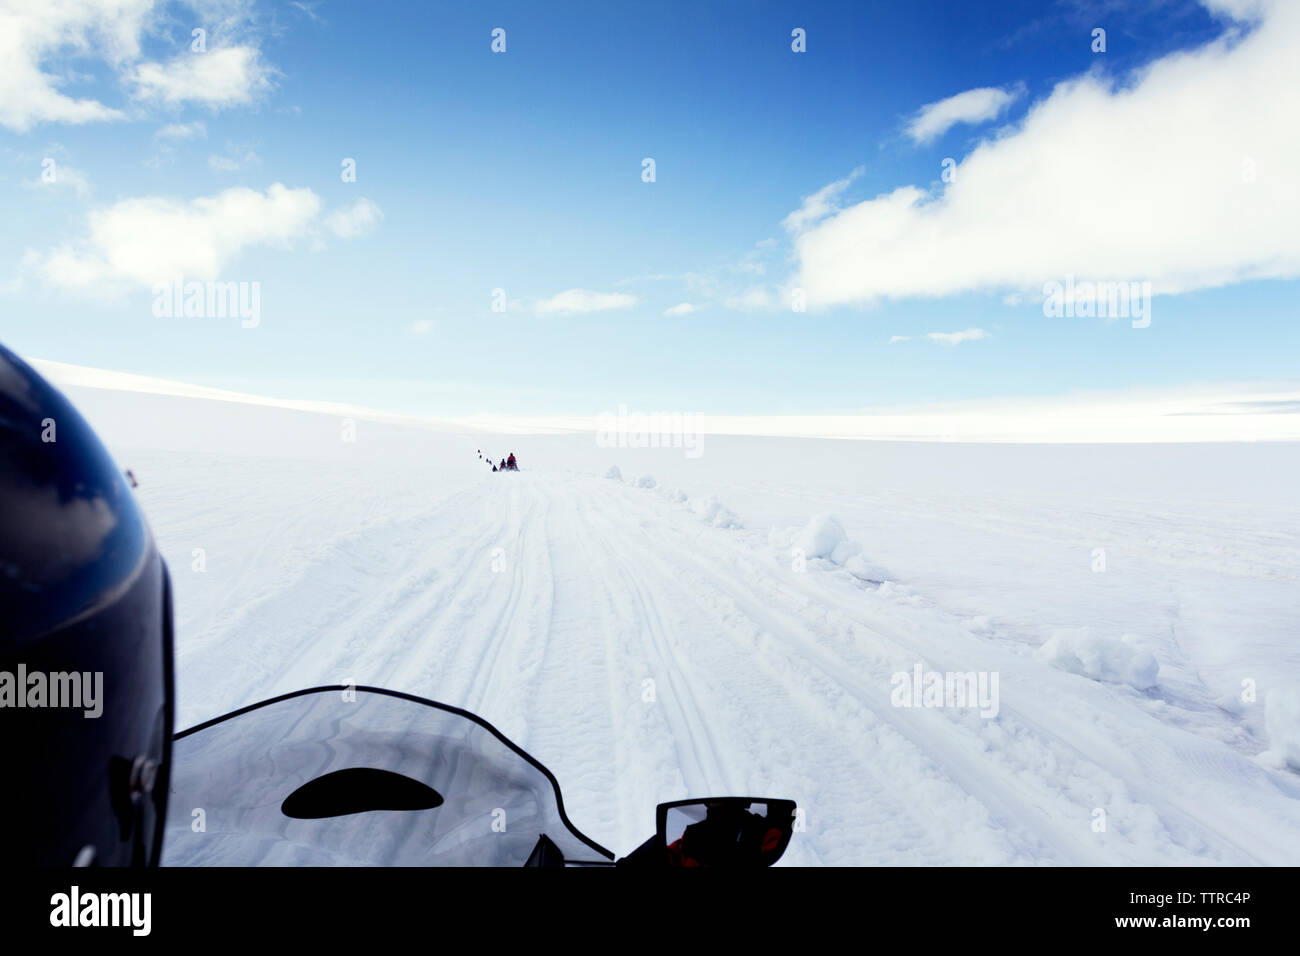 Cropped image of person riding snowmobile on landscape against sky - Stock Image